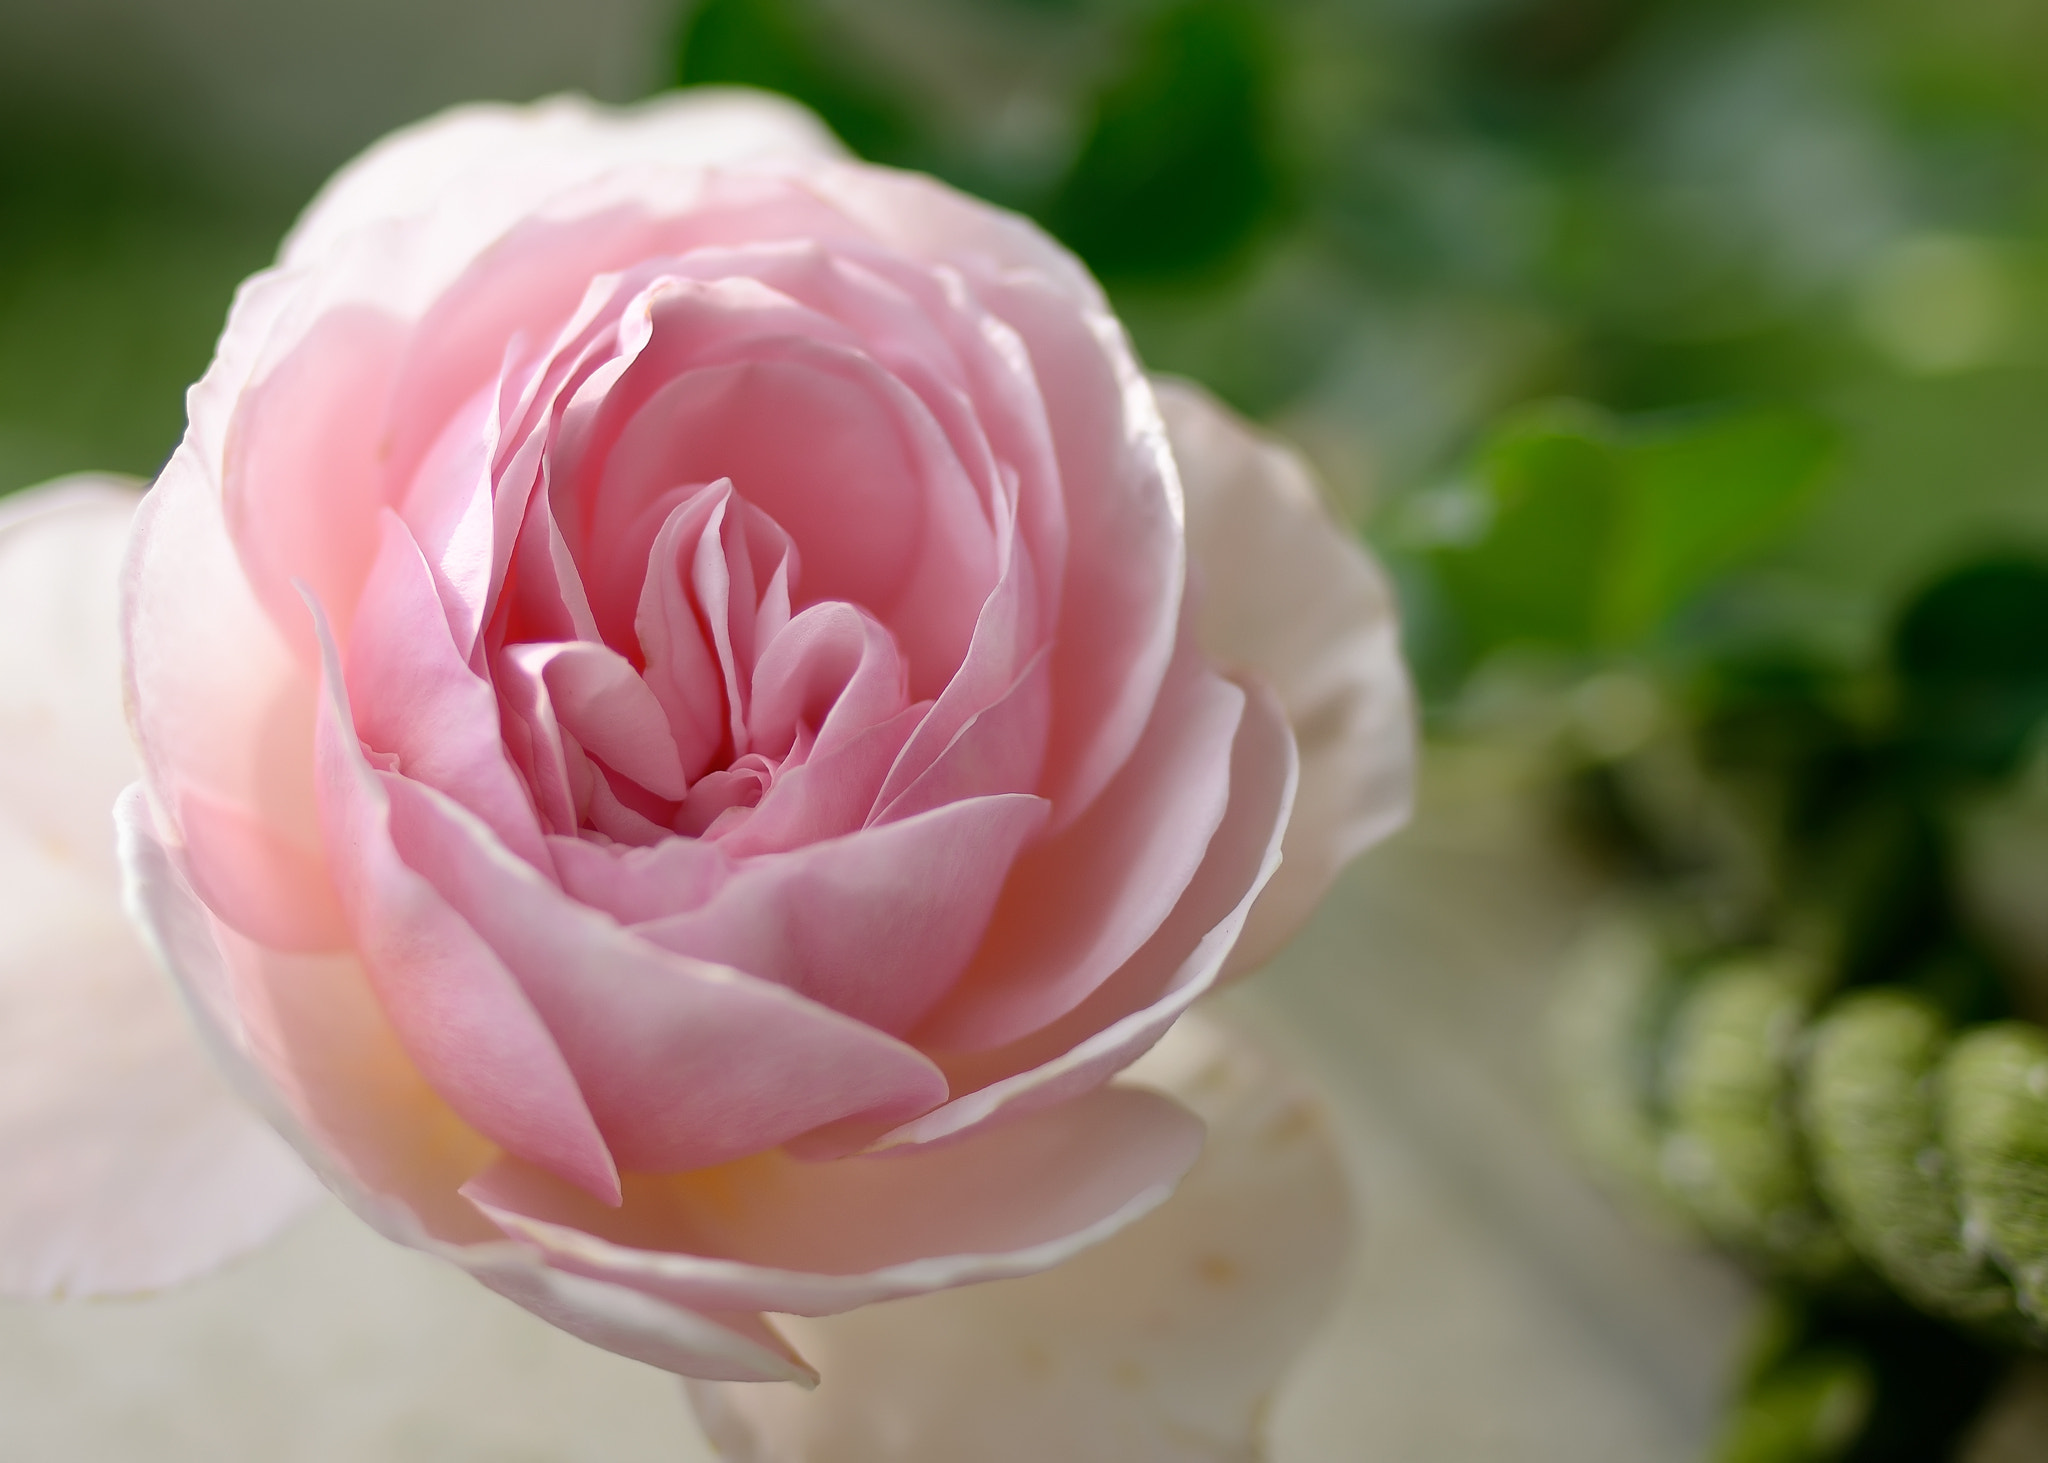 Photograph Rose rose I love you by Brian Hsu on 500px